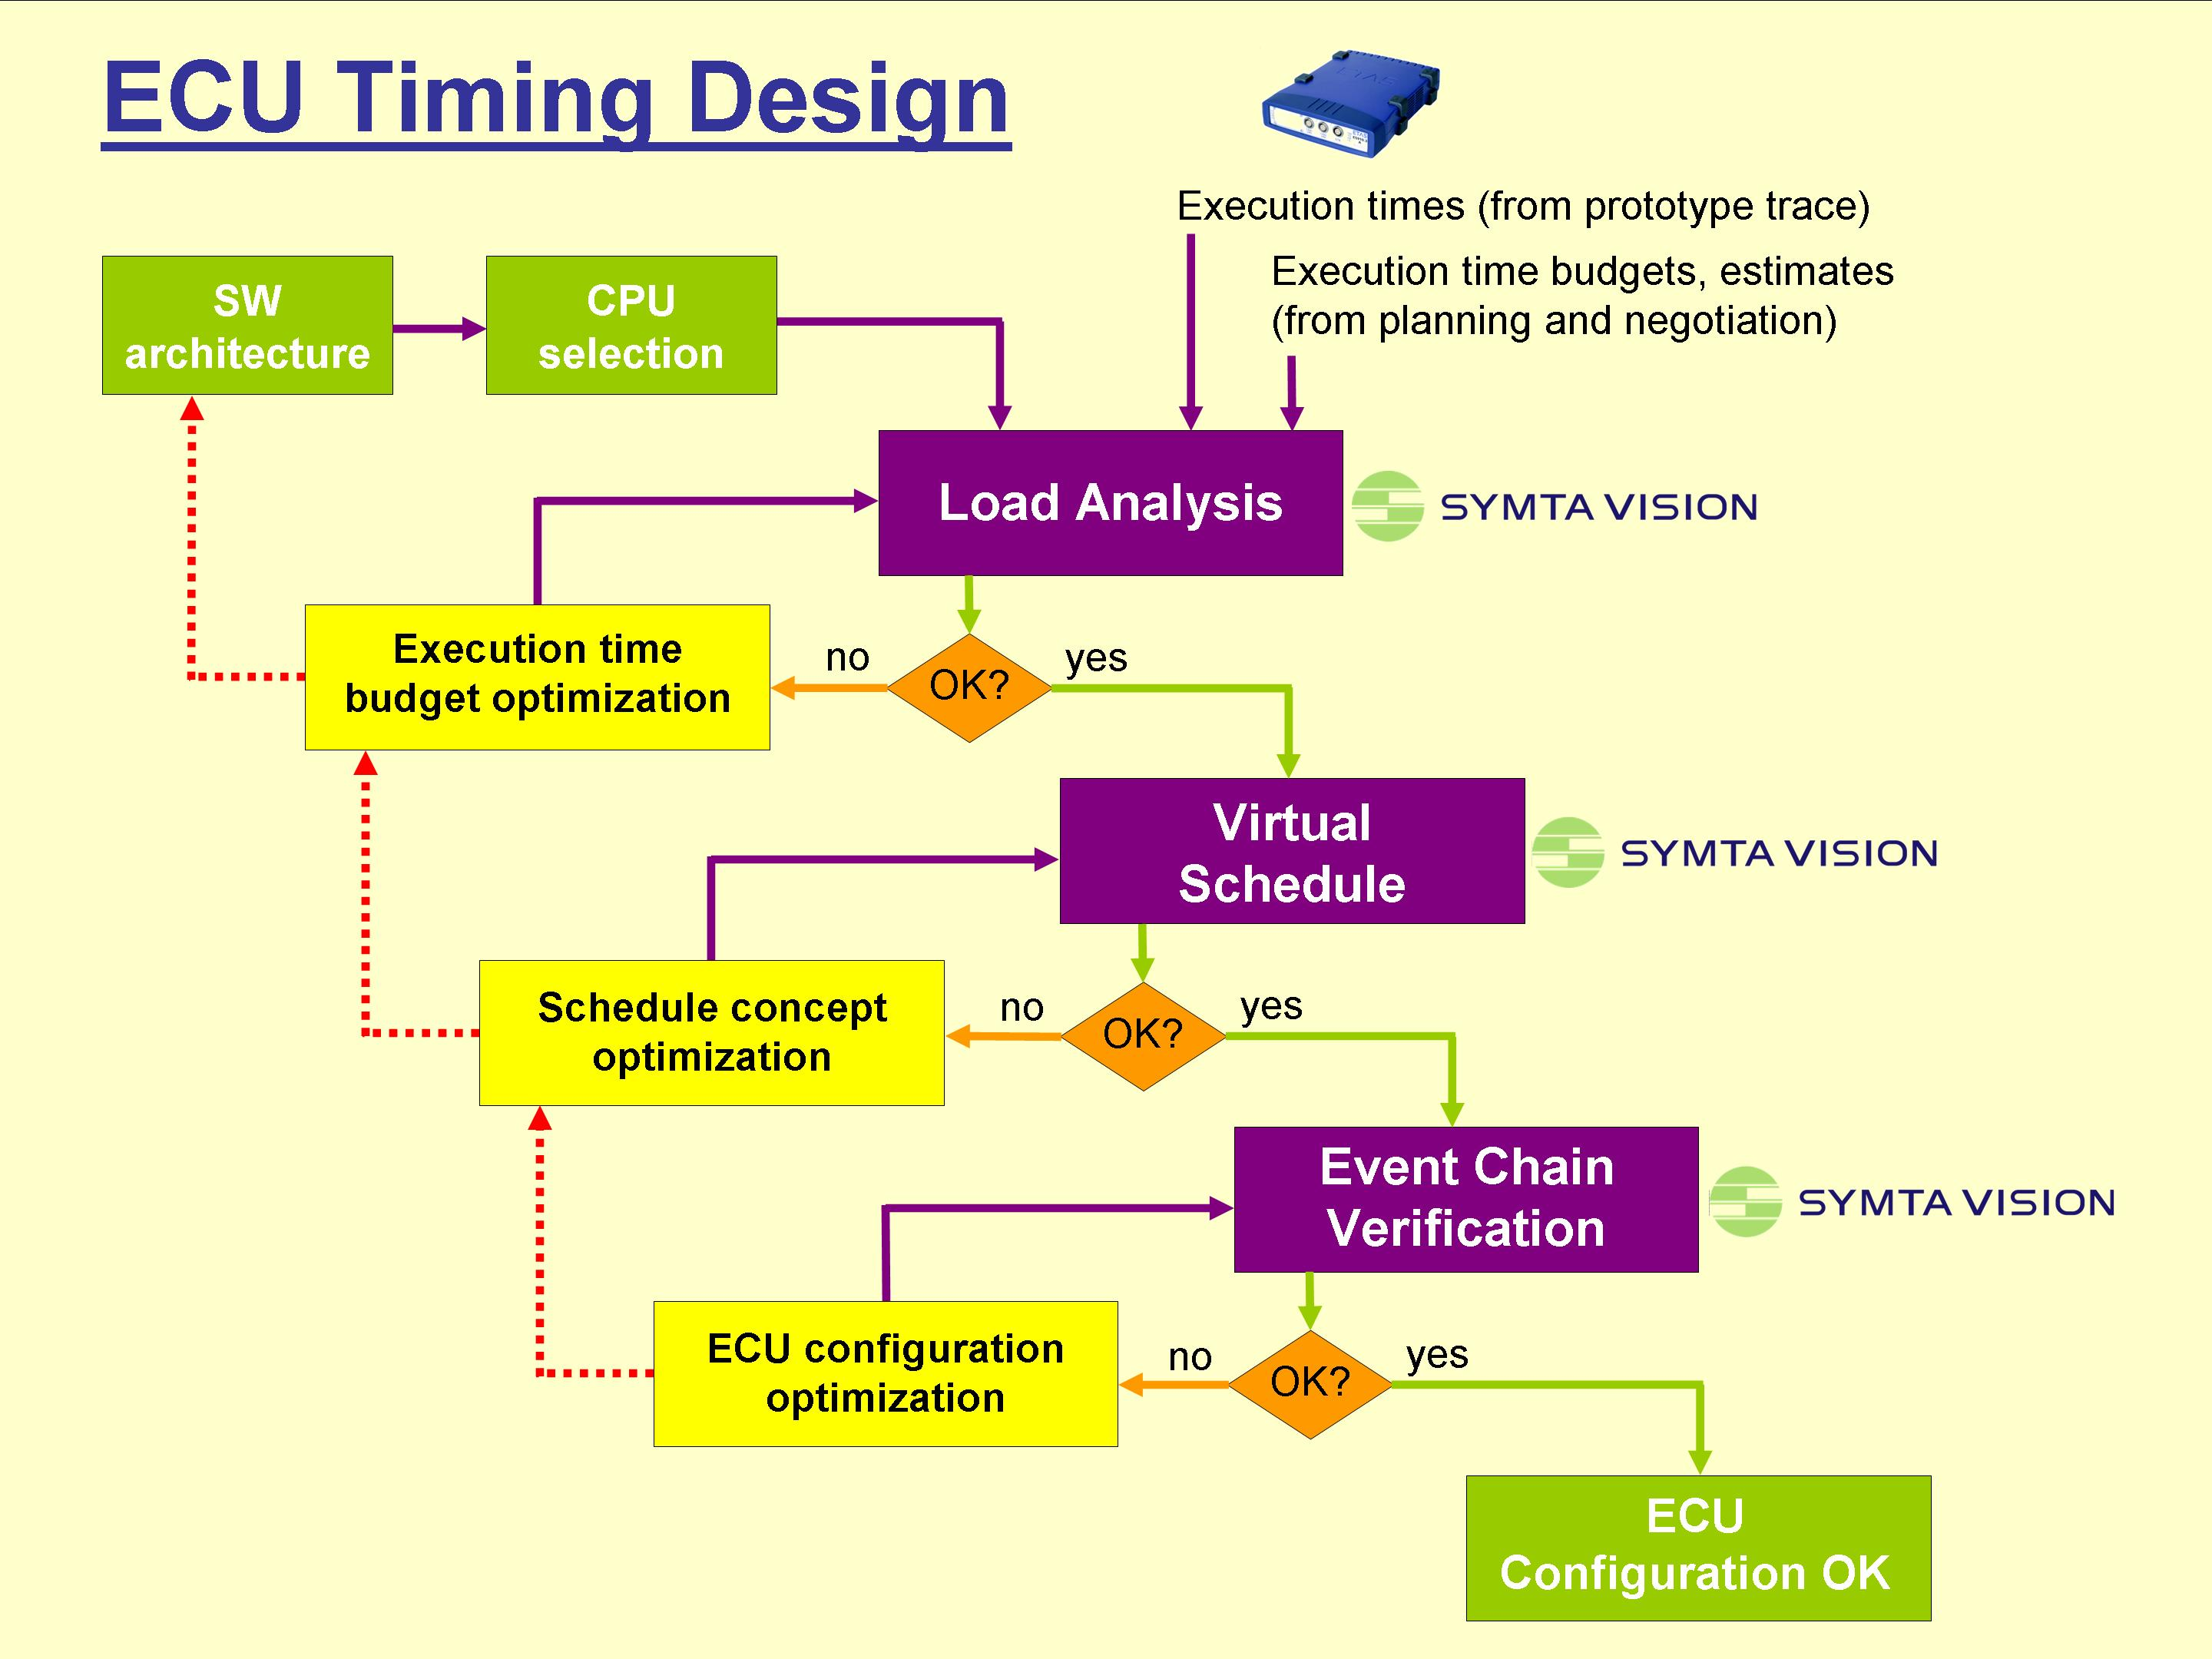 Symtavision joins efforts with AUTOSAR modelling tool vendors